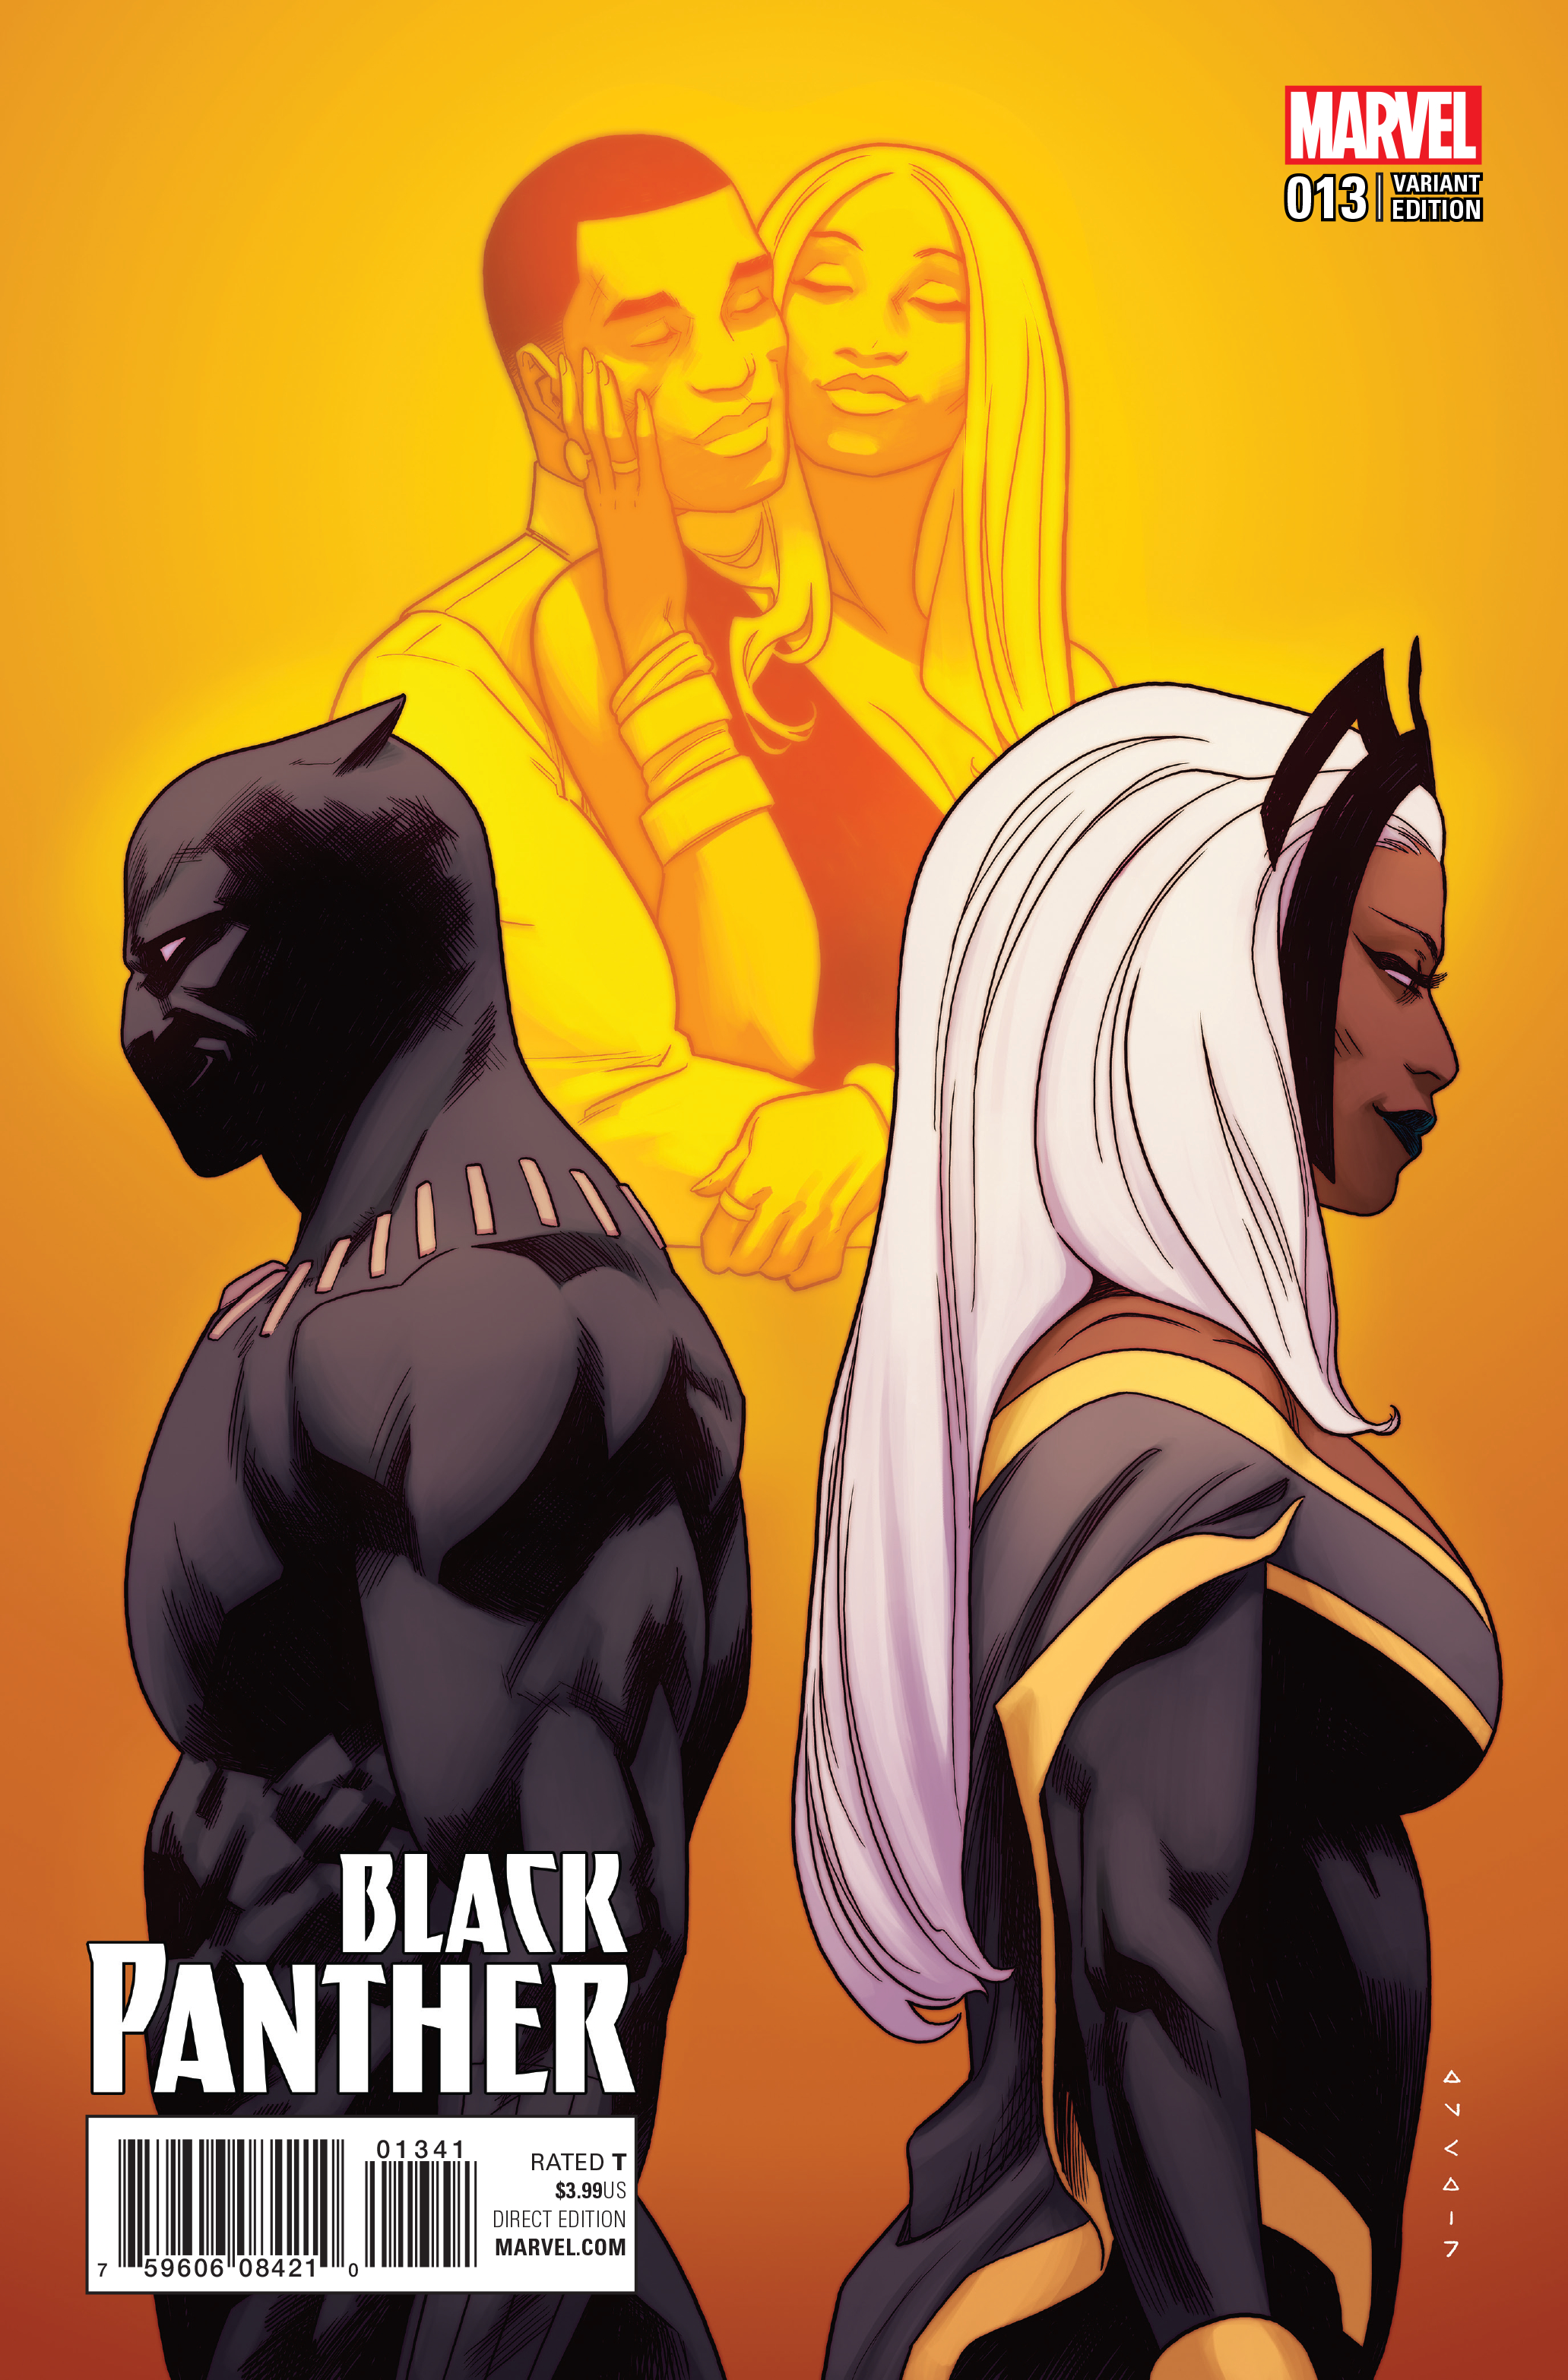 Since We Re Going To See Storm And Black Panther Date In 13 Do You Want T Challa Ororo Munroe Get Back Together As A Again